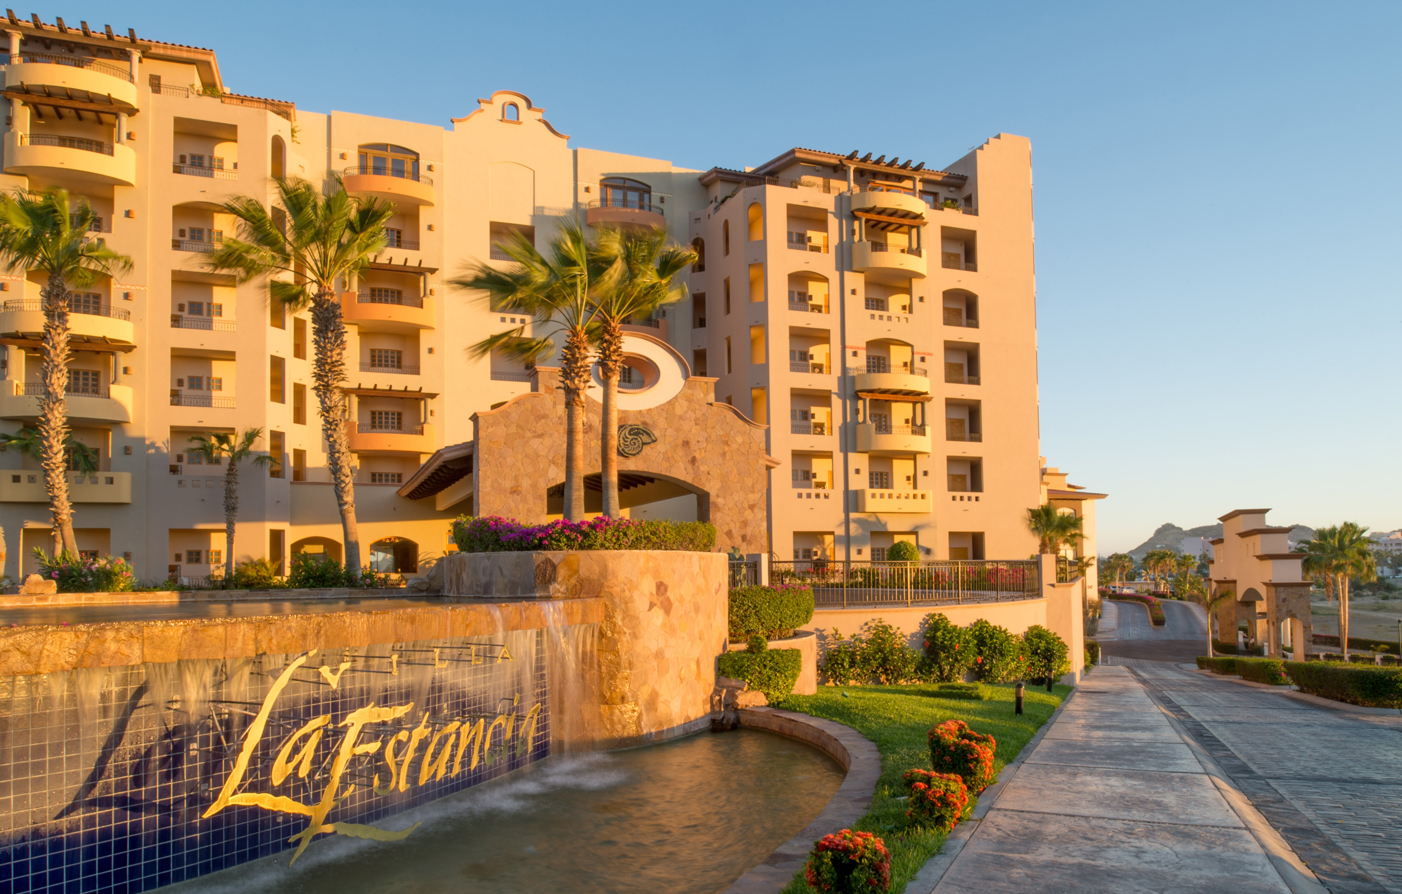 Villa La Estancia Beach Resort & Spa  in Cabo San Lucas